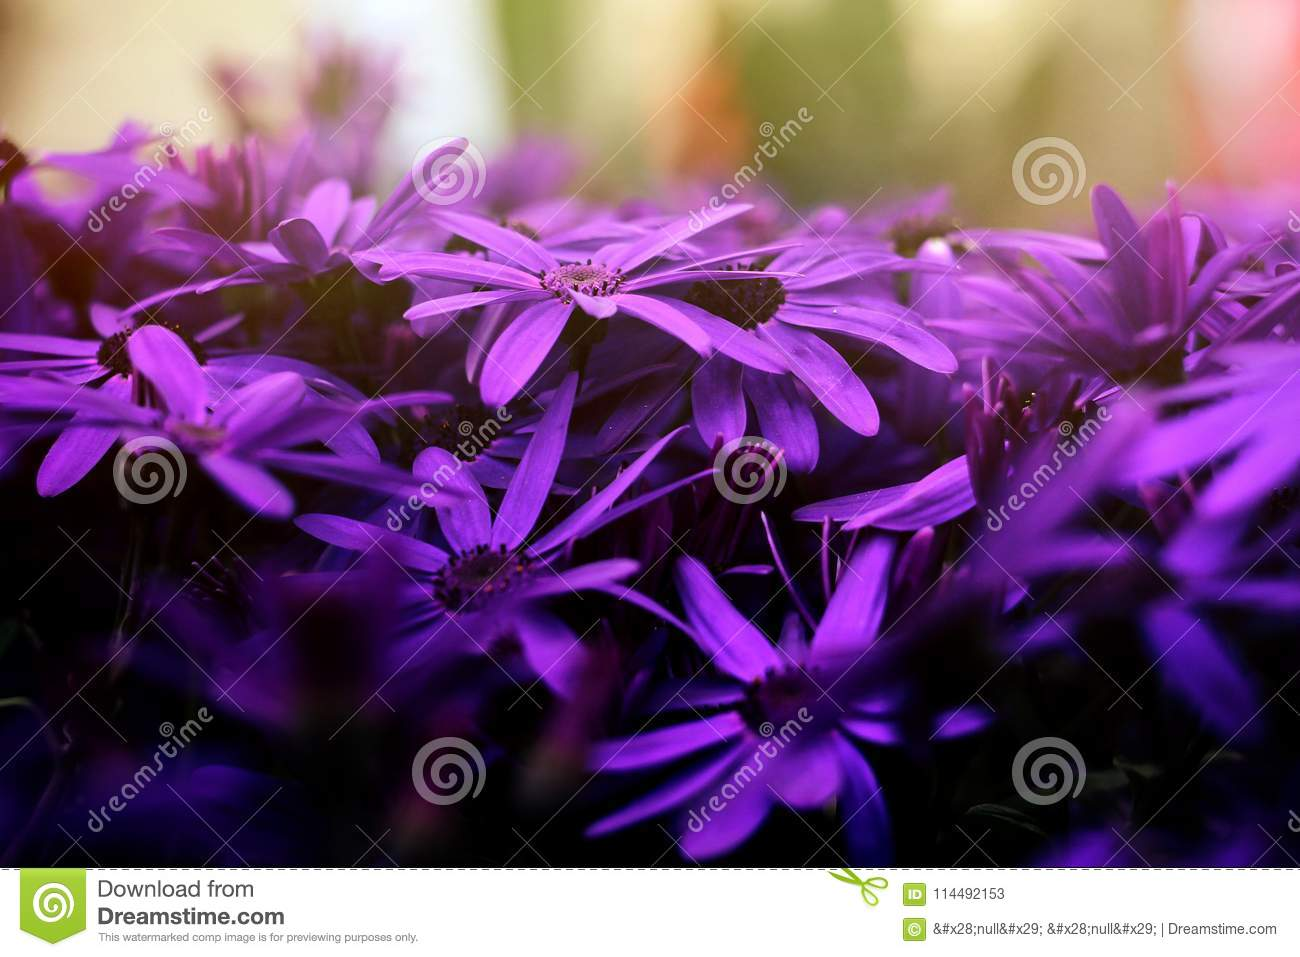 Amazing Beautiful Purple Flowers In Close Up View With Magical W